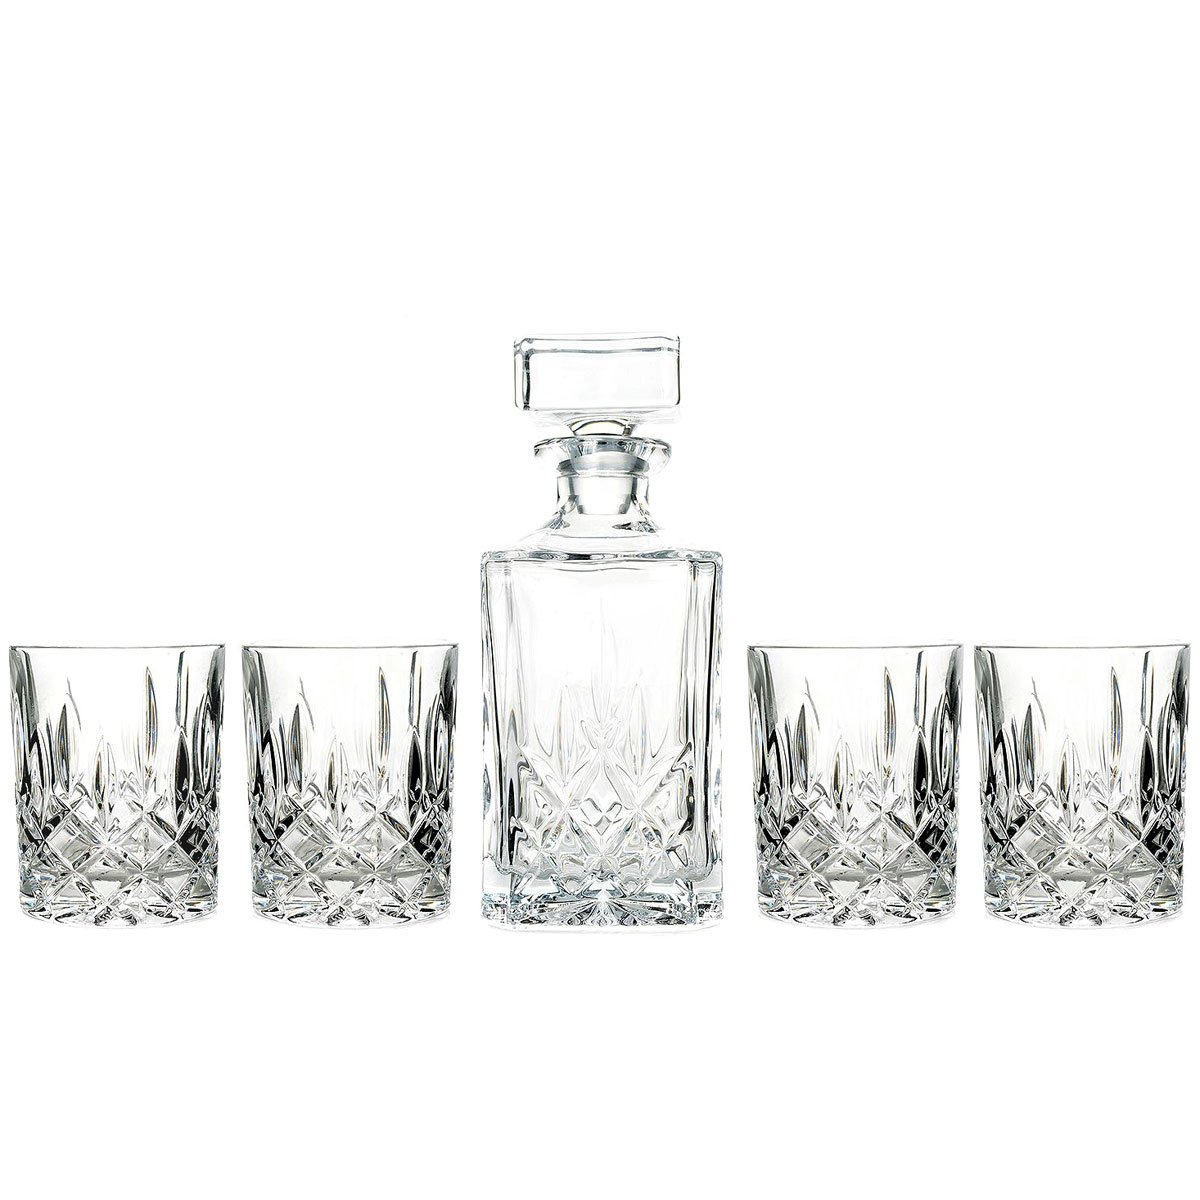 Marquis by Waterford Decanter and Set of Four Double Old Fashioned Glasses by Marquis by Waterford